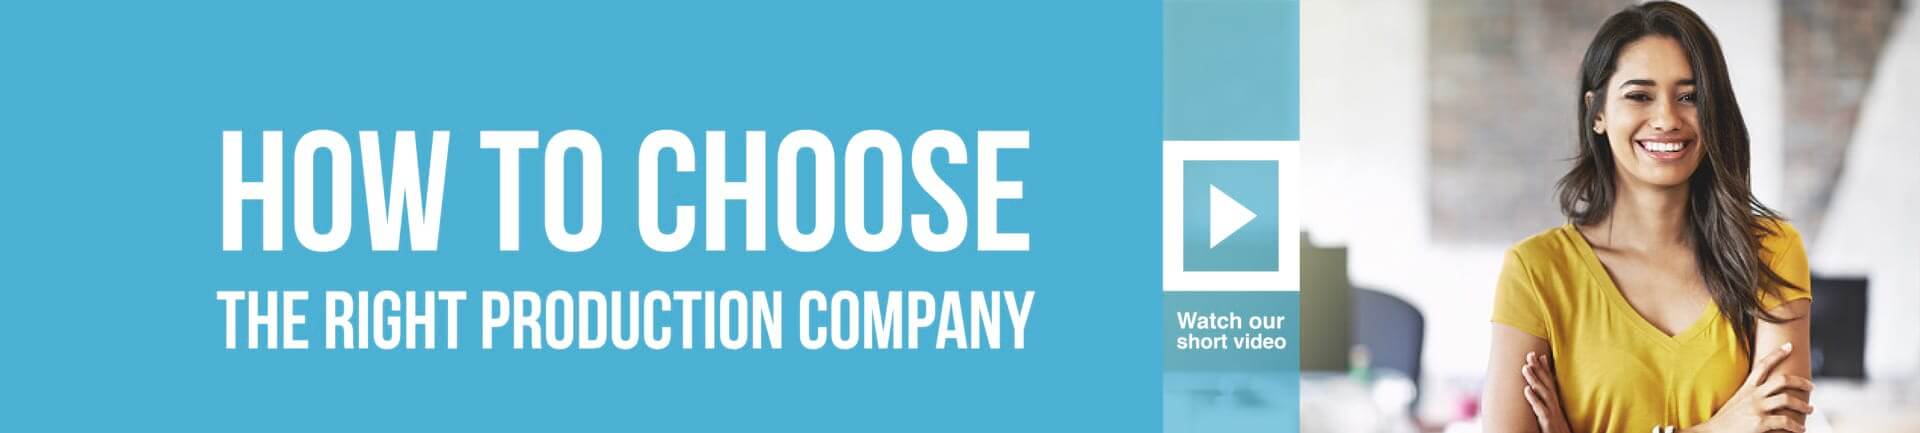 how to choose the right production company business